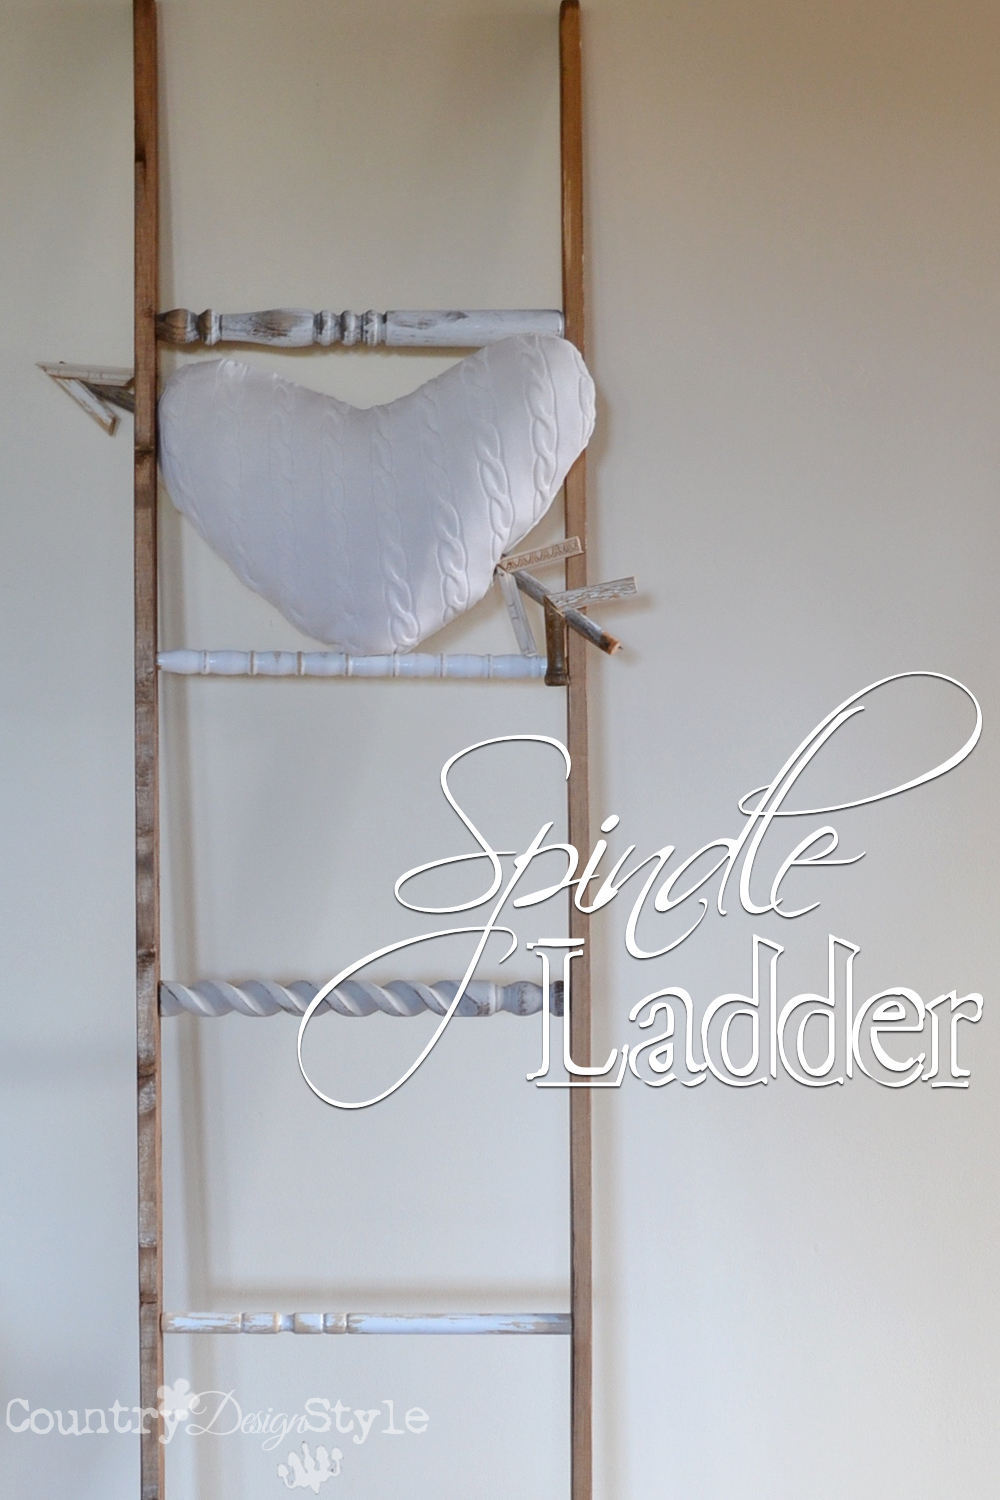 spindle-ladder-country-design-style-pn3